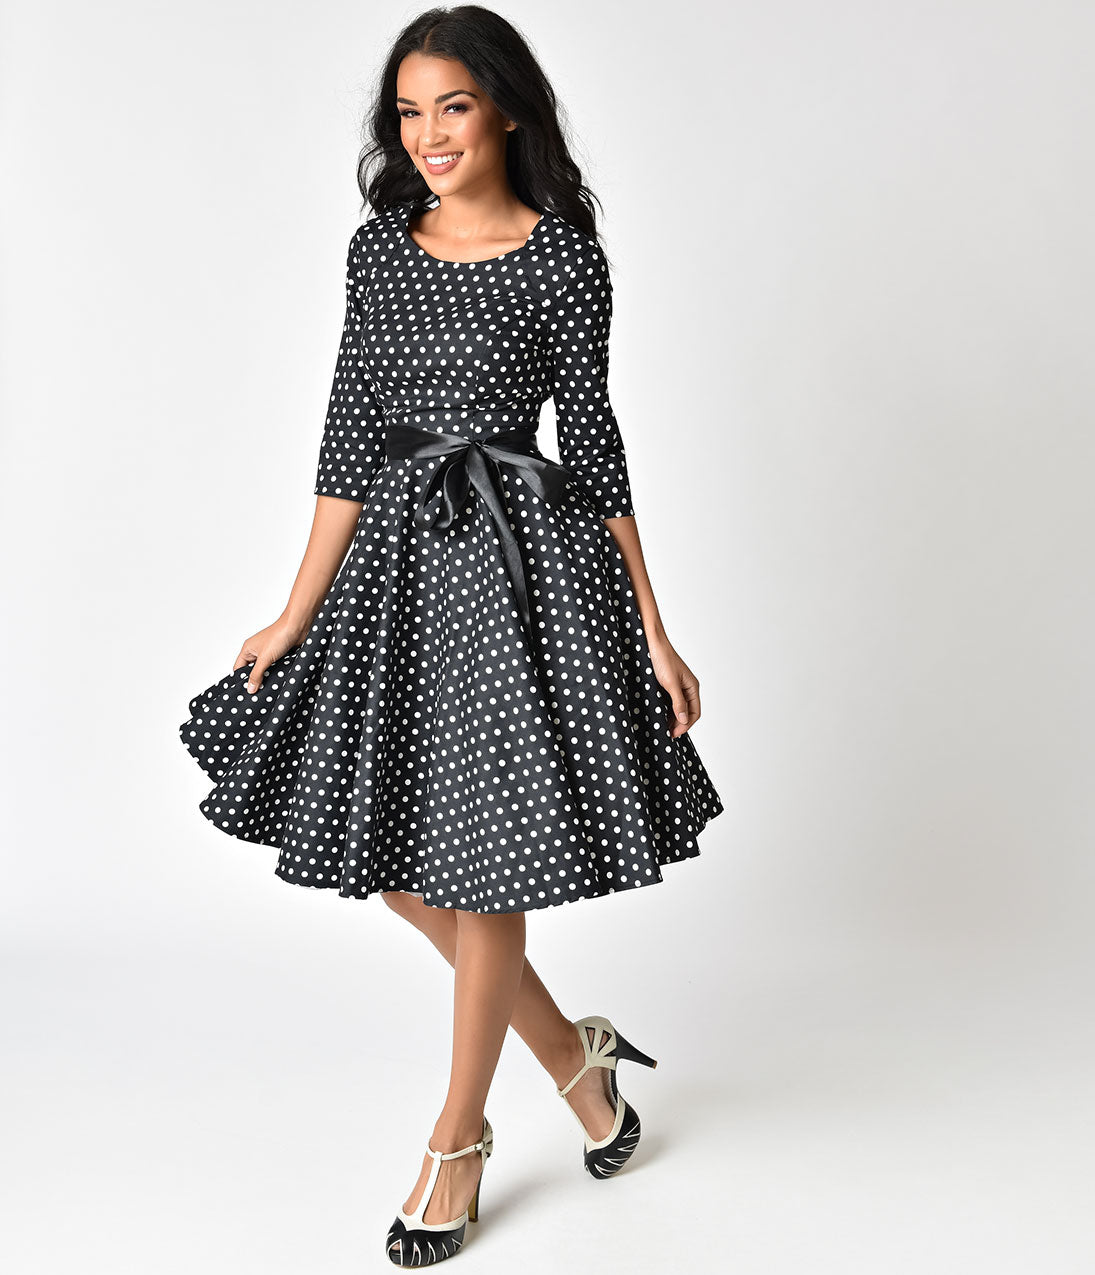 1940s Style Dresses | 40s Dress, Swing Dress 1940s Style Black  White Polka Dot Cotton Sleeved Swing Dress $92.00 AT vintagedancer.com